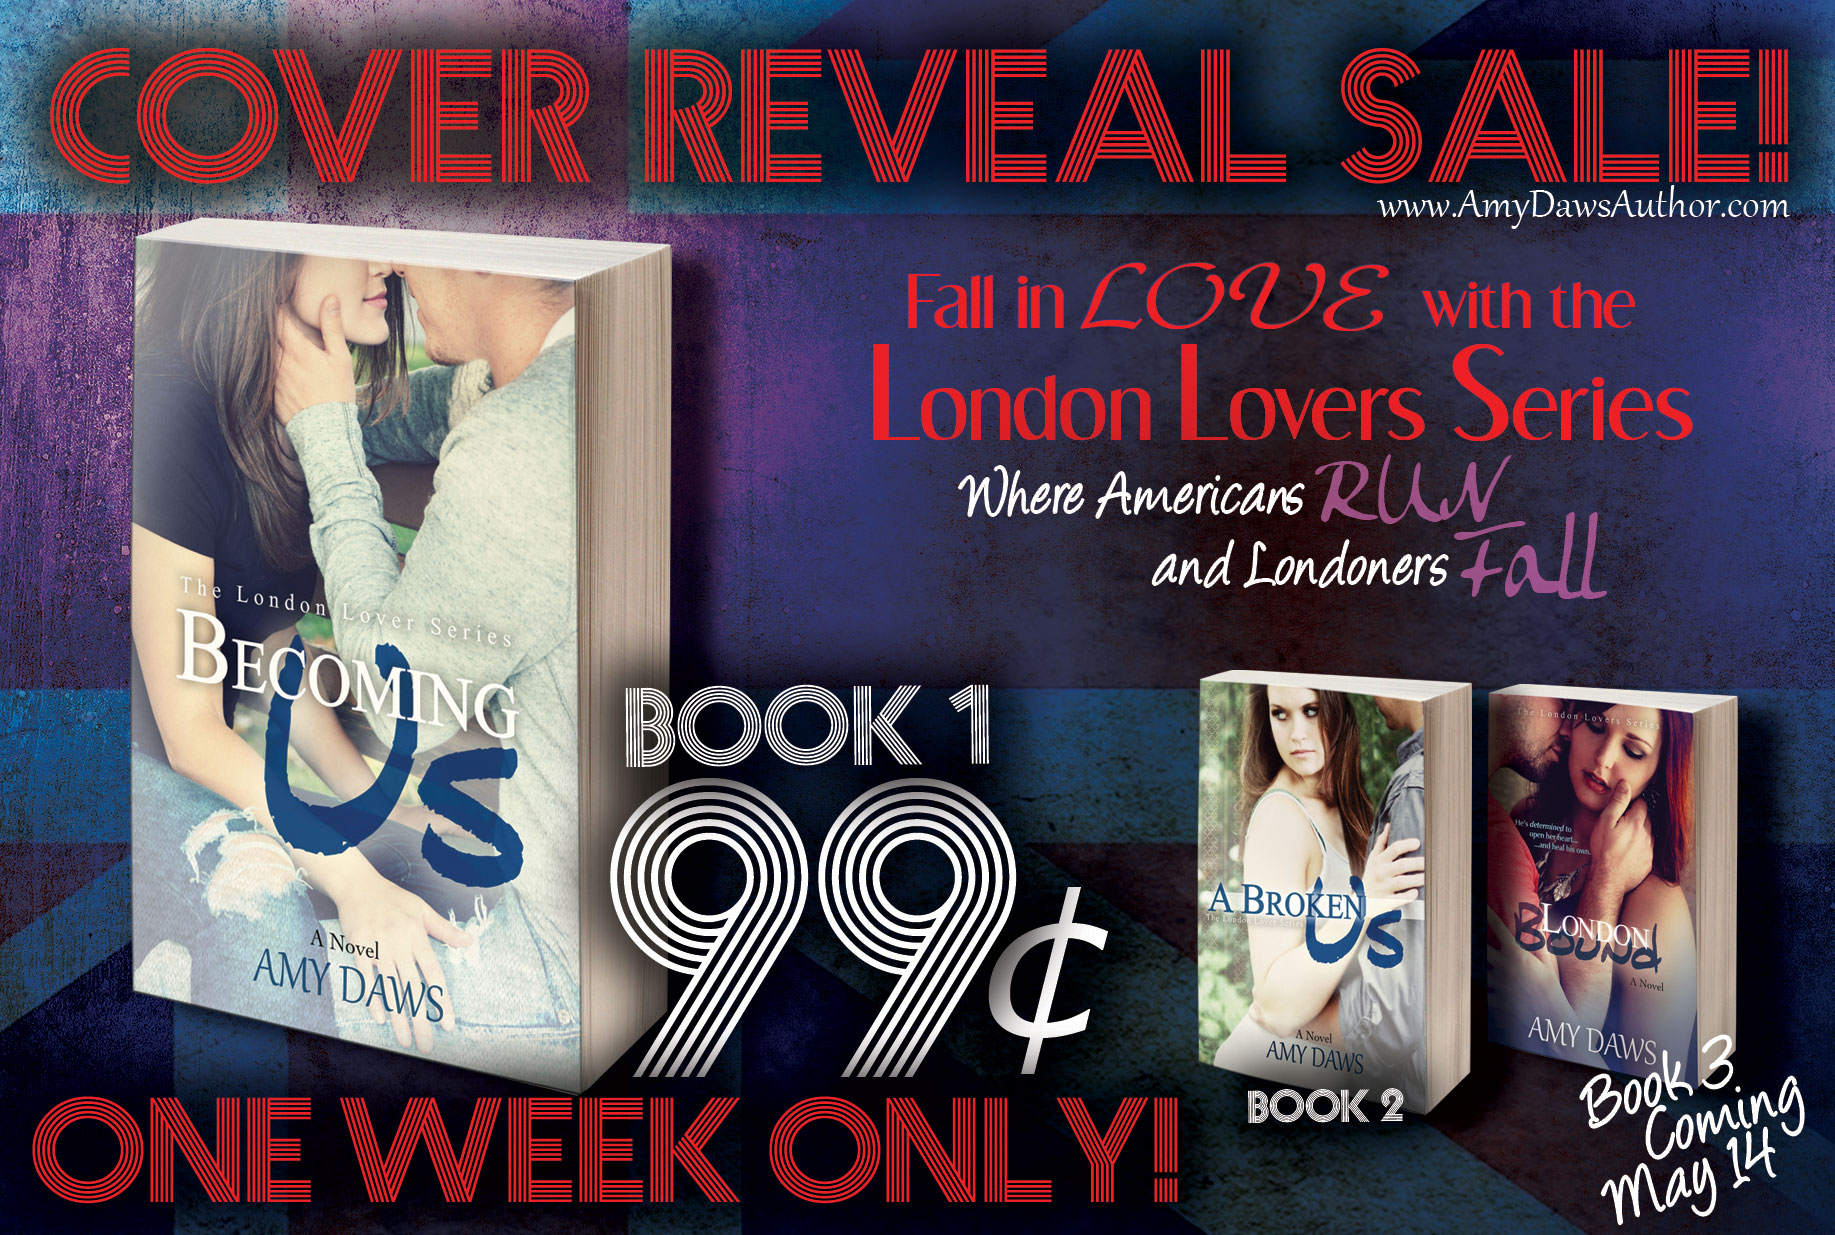 COVER REVEAL & #99C SALE: LONDON BOUND by Amy Daws